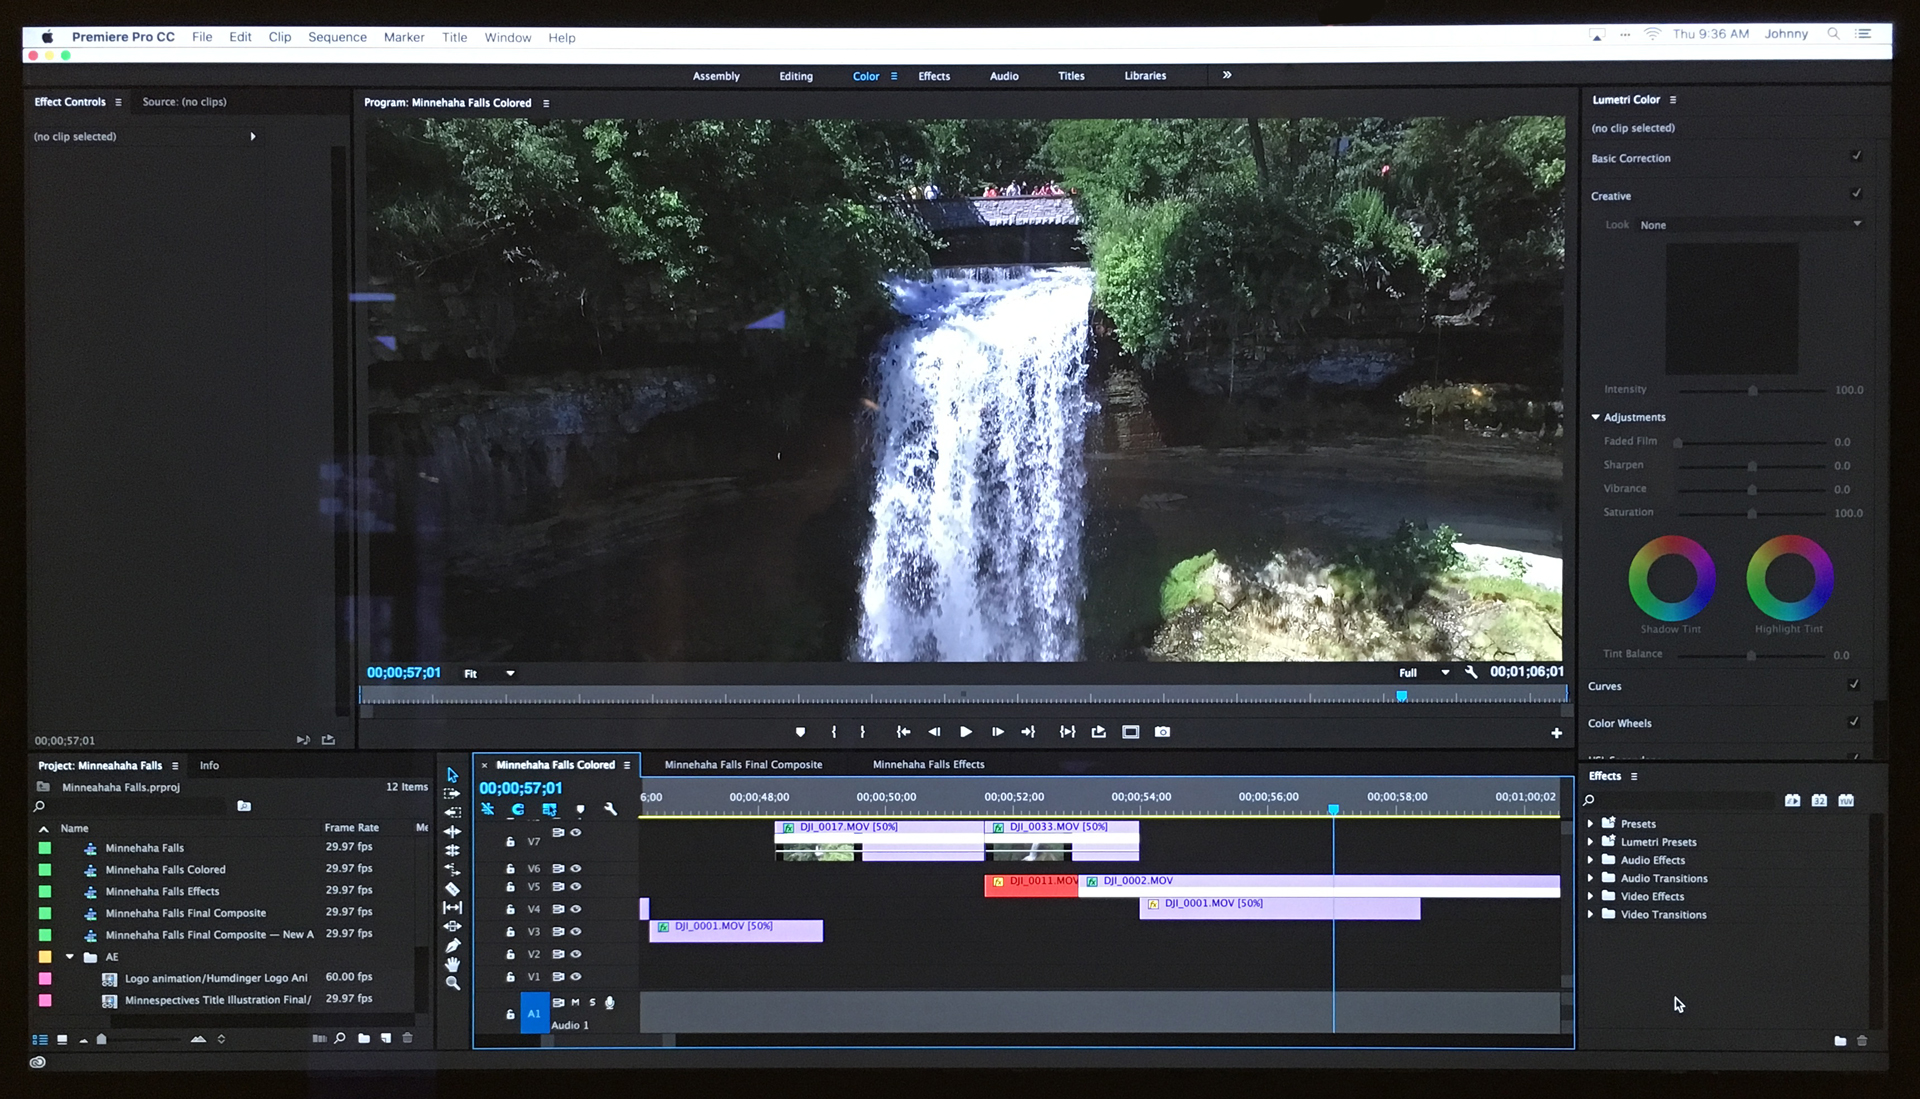 A peek into the magic that happens behind the scenes—coloring and editing the footage, clip by clip.